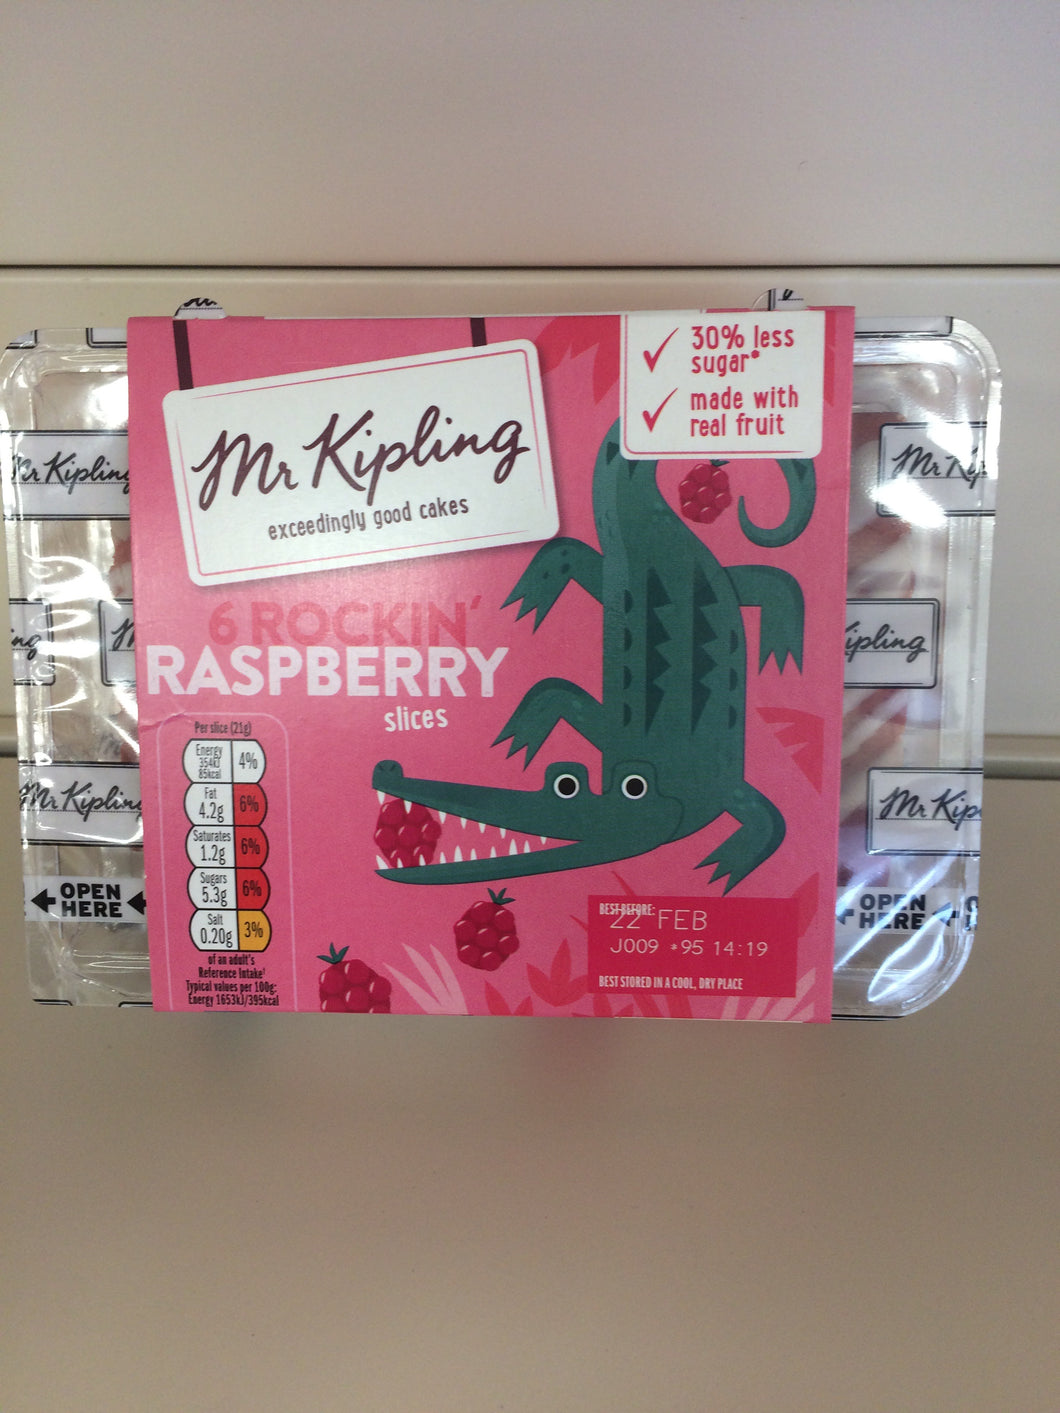 Mr Kipling 6 Rockin' Raspberry Slices